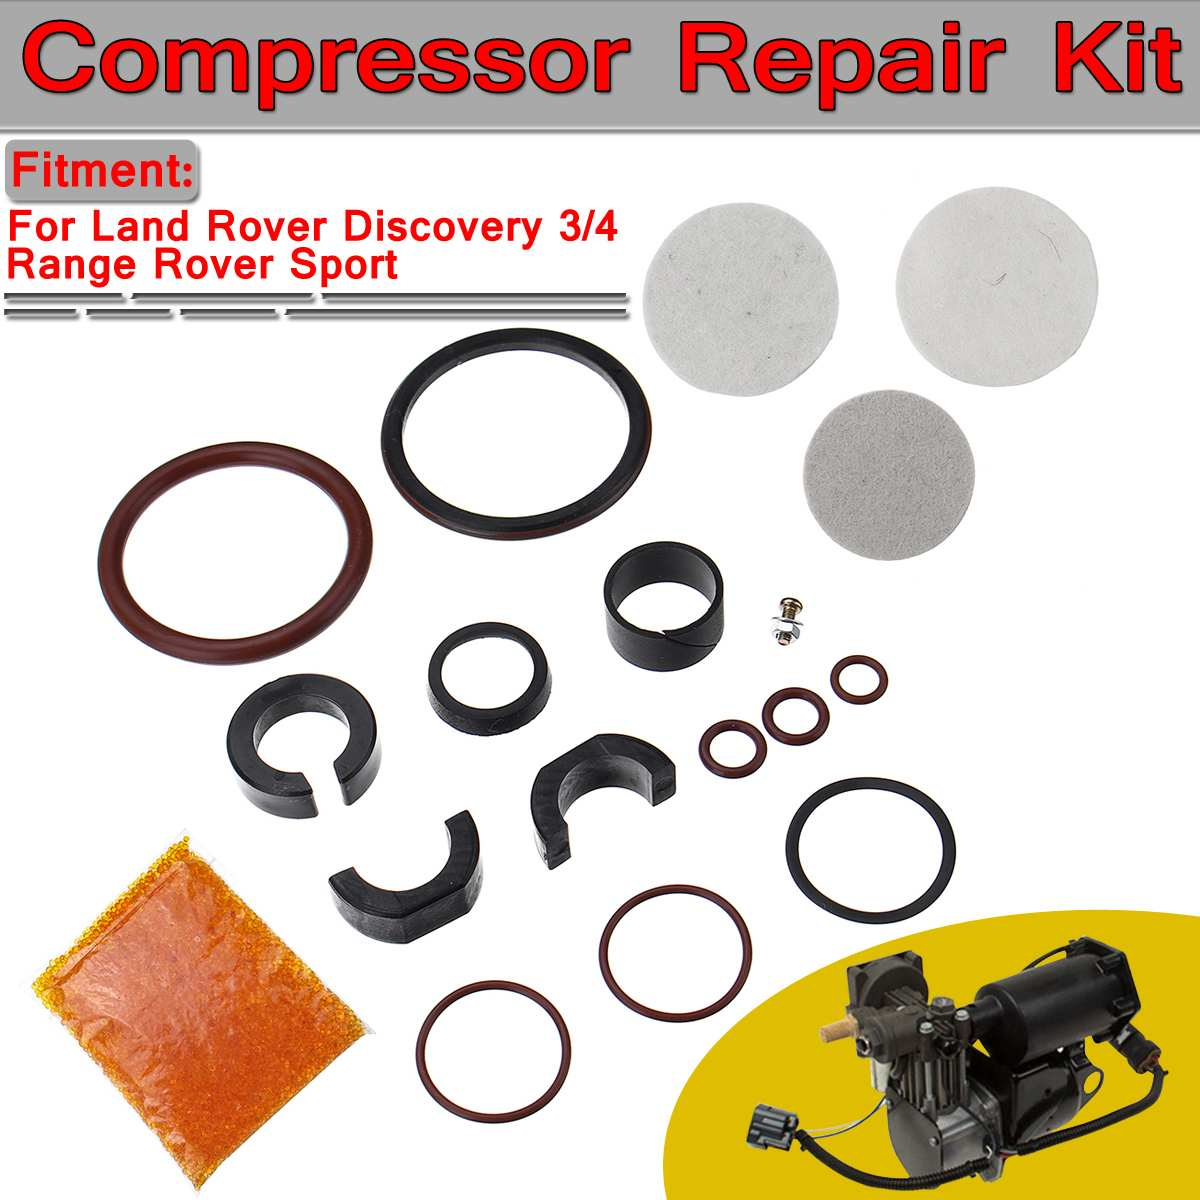 Auto Luchtvering A/C Compressor Reparatie Kit Voor Land Rover Discovery 3/4 Range Rover Sport RQG000017 RQG000018 RQG000019